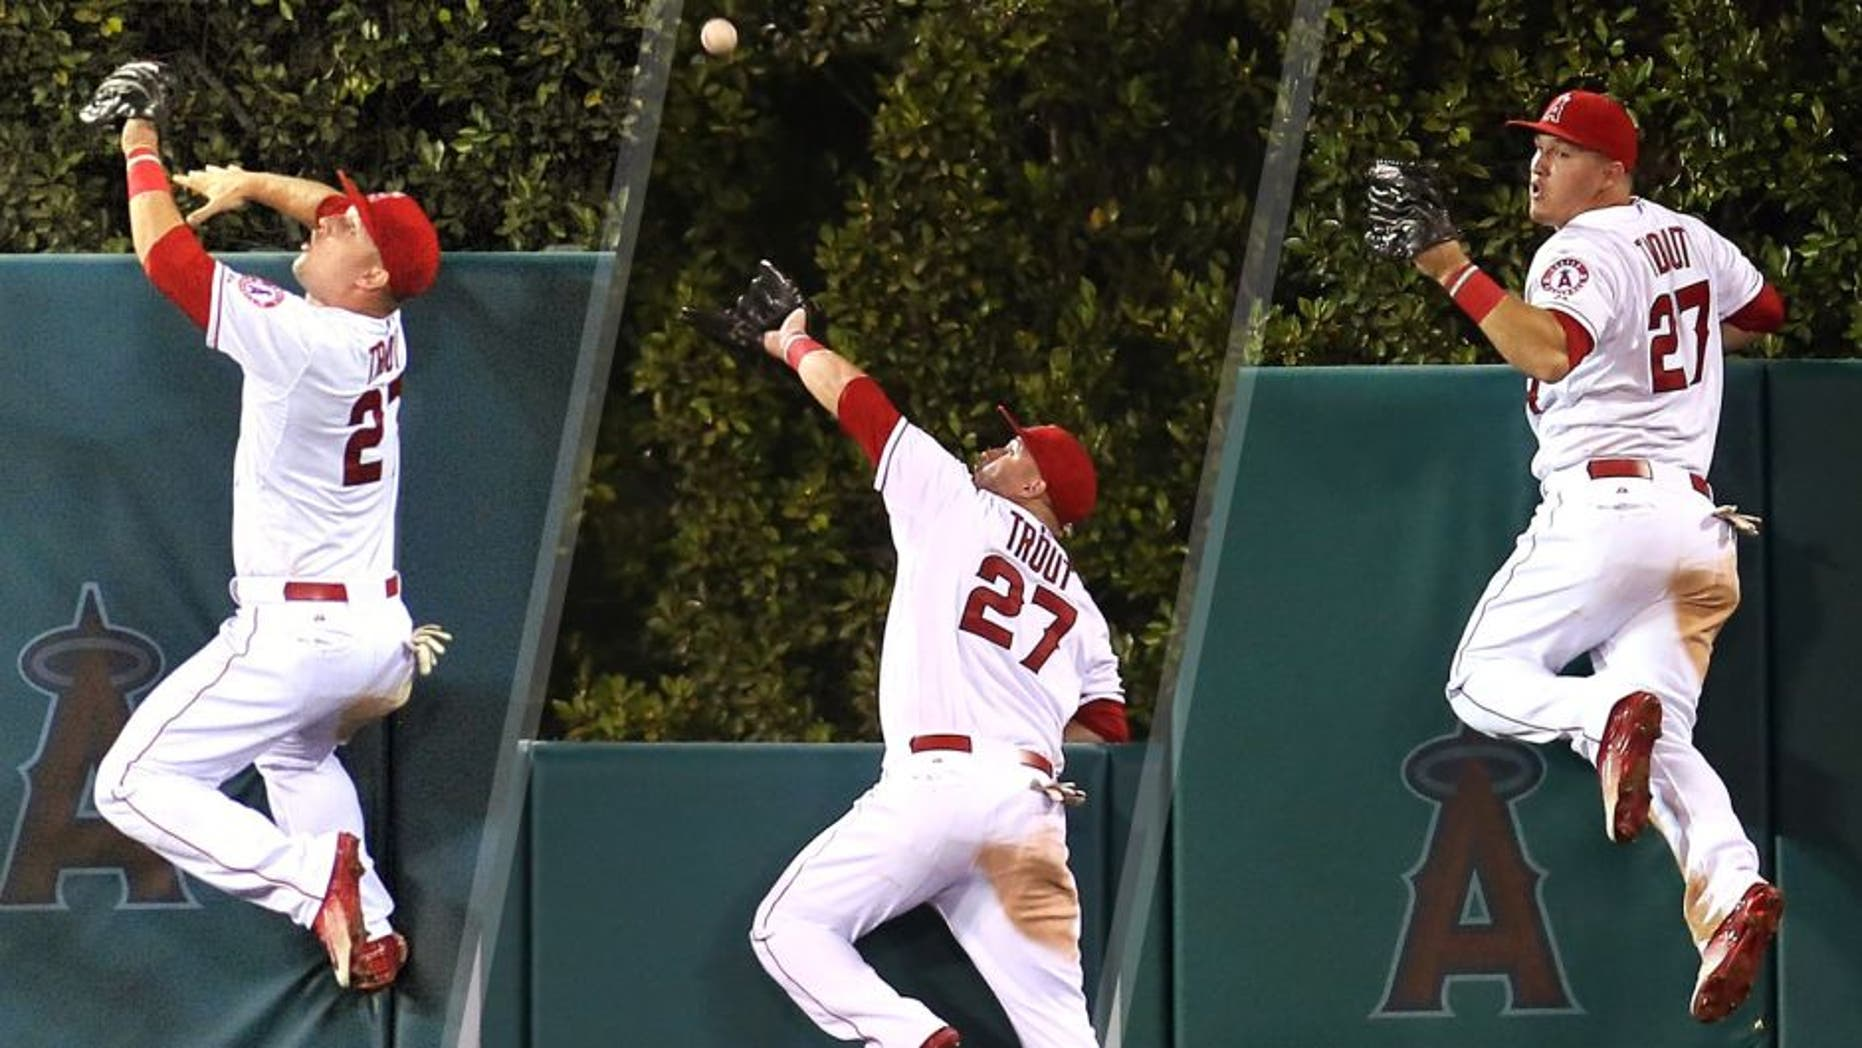 September 26, 2015; Anaheim, CA, USA; Los Angeles Angels center fielder Mike Trout (27) climbs the fence in the fourth inning to catch a fly ball hit by Seattle Mariners first baseman Jesus Montero (not pictured) at Angel Stadium of Anaheim. Mandatory Credit: Gary A. Vasquez-USA TODAY Sports ANAHEIM, CA - SEPTEMBER 26: Center fielder Mike Trout #27 of the Los Angeles Angels of Anaheim jumps at the wall and makes the catch to take a home away from Jesus Montero of the Seattle Mariners in the fourth inning at Angel Stadium of Anaheim on September 26, 2015 in Anaheim, California. (Photo by Stephen Dunn/Getty Images) ANAHEIM, CA - SEPTEMBER 26: Center fielder Mike Trout #27 of the Los Angeles Angels of Anaheim reacts after jumping at the wall and making the catch to take a home away from Jesus Montero of the Seattle Mariners in the fourth inning at Angel Stadium of Anaheim on September 26, 2015 in Anaheim, California. (Photo by Stephen Dunn/Getty Images)